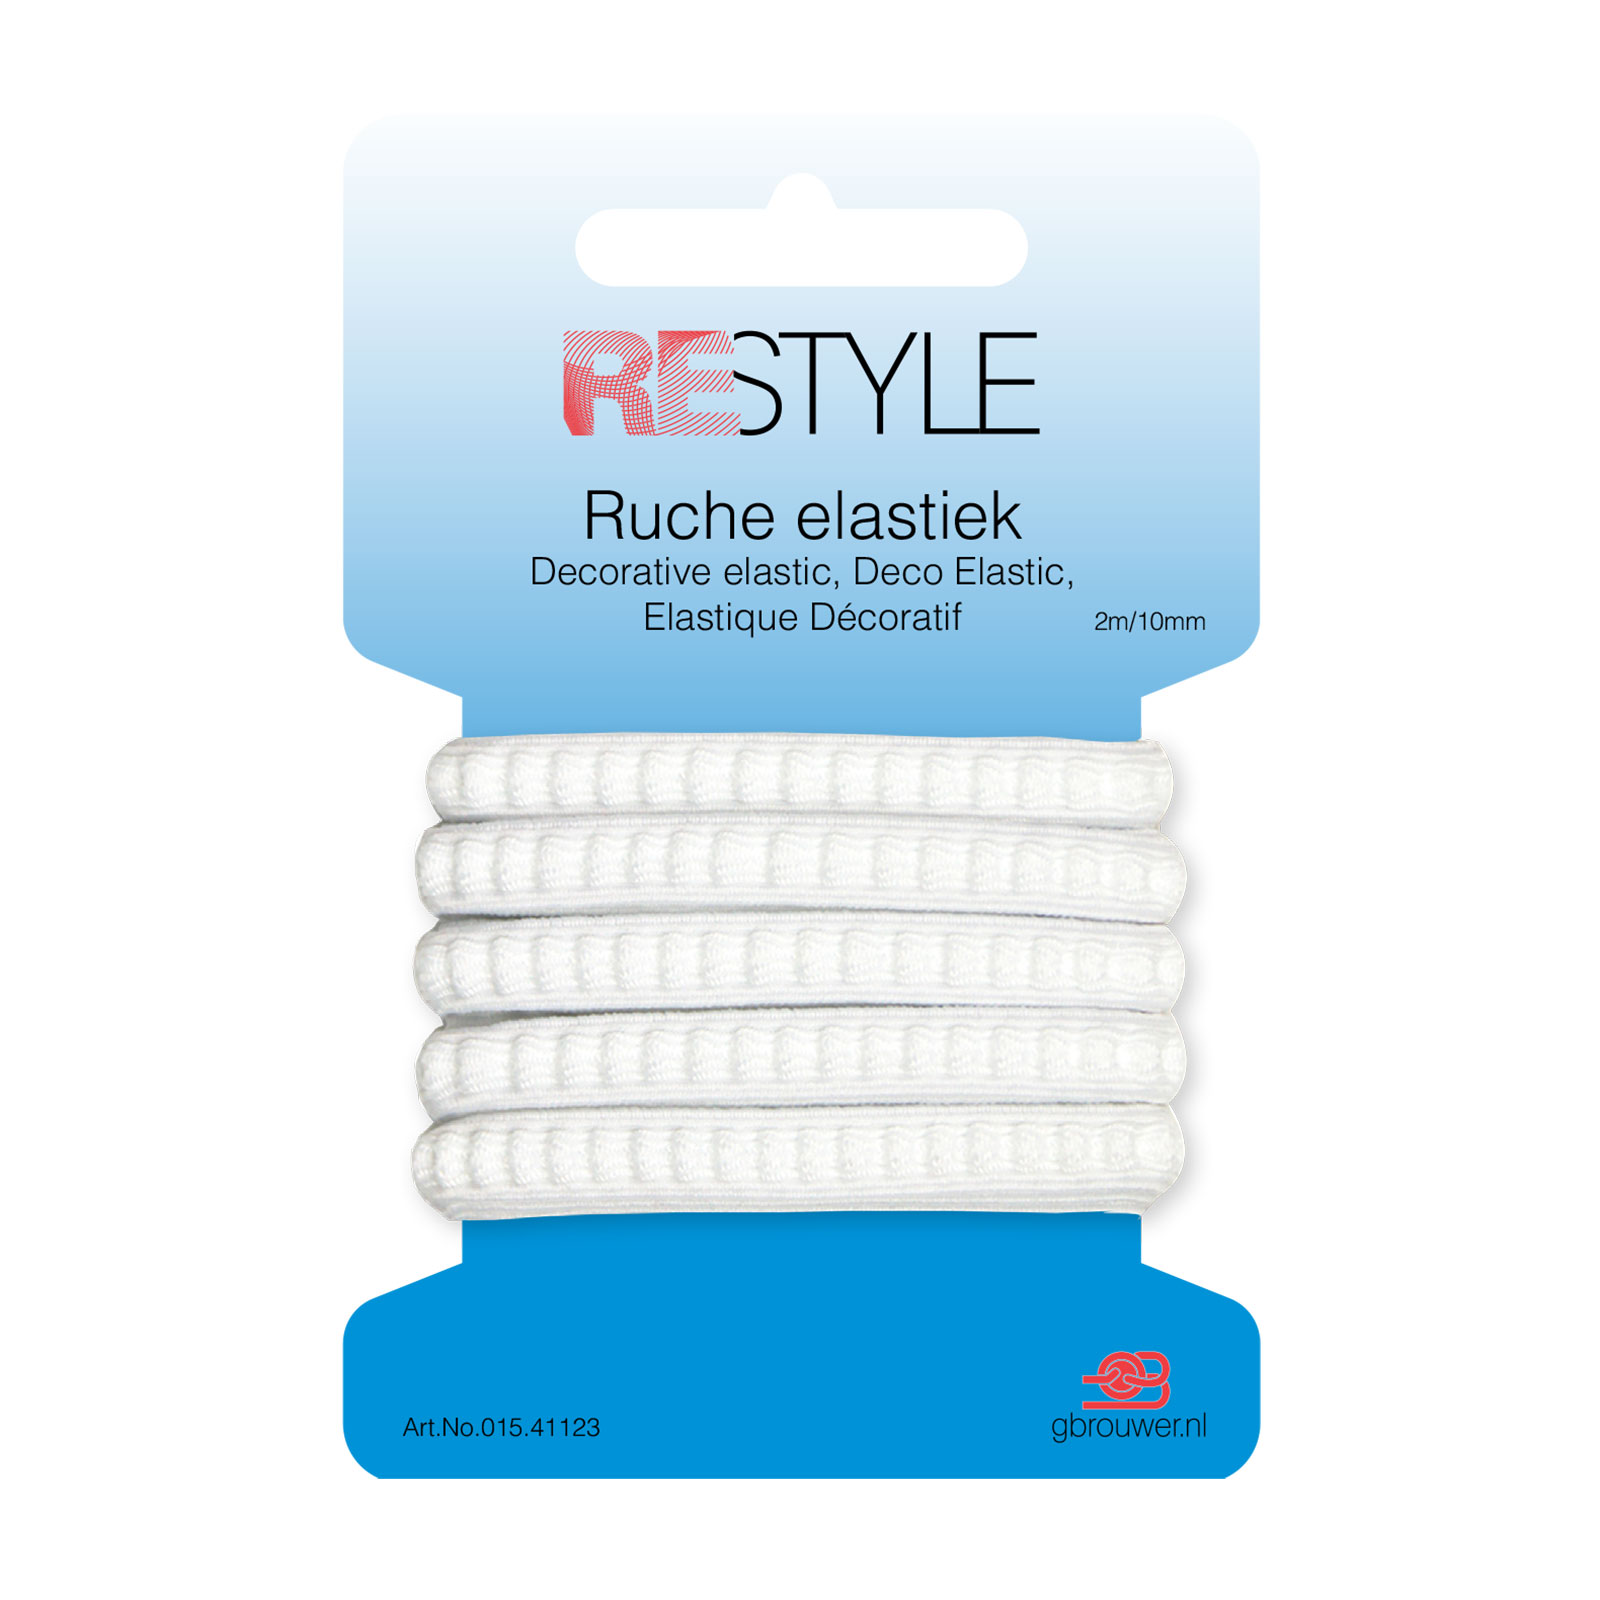 REStyle Ruche Elastiek 10mm 2m Wit-009